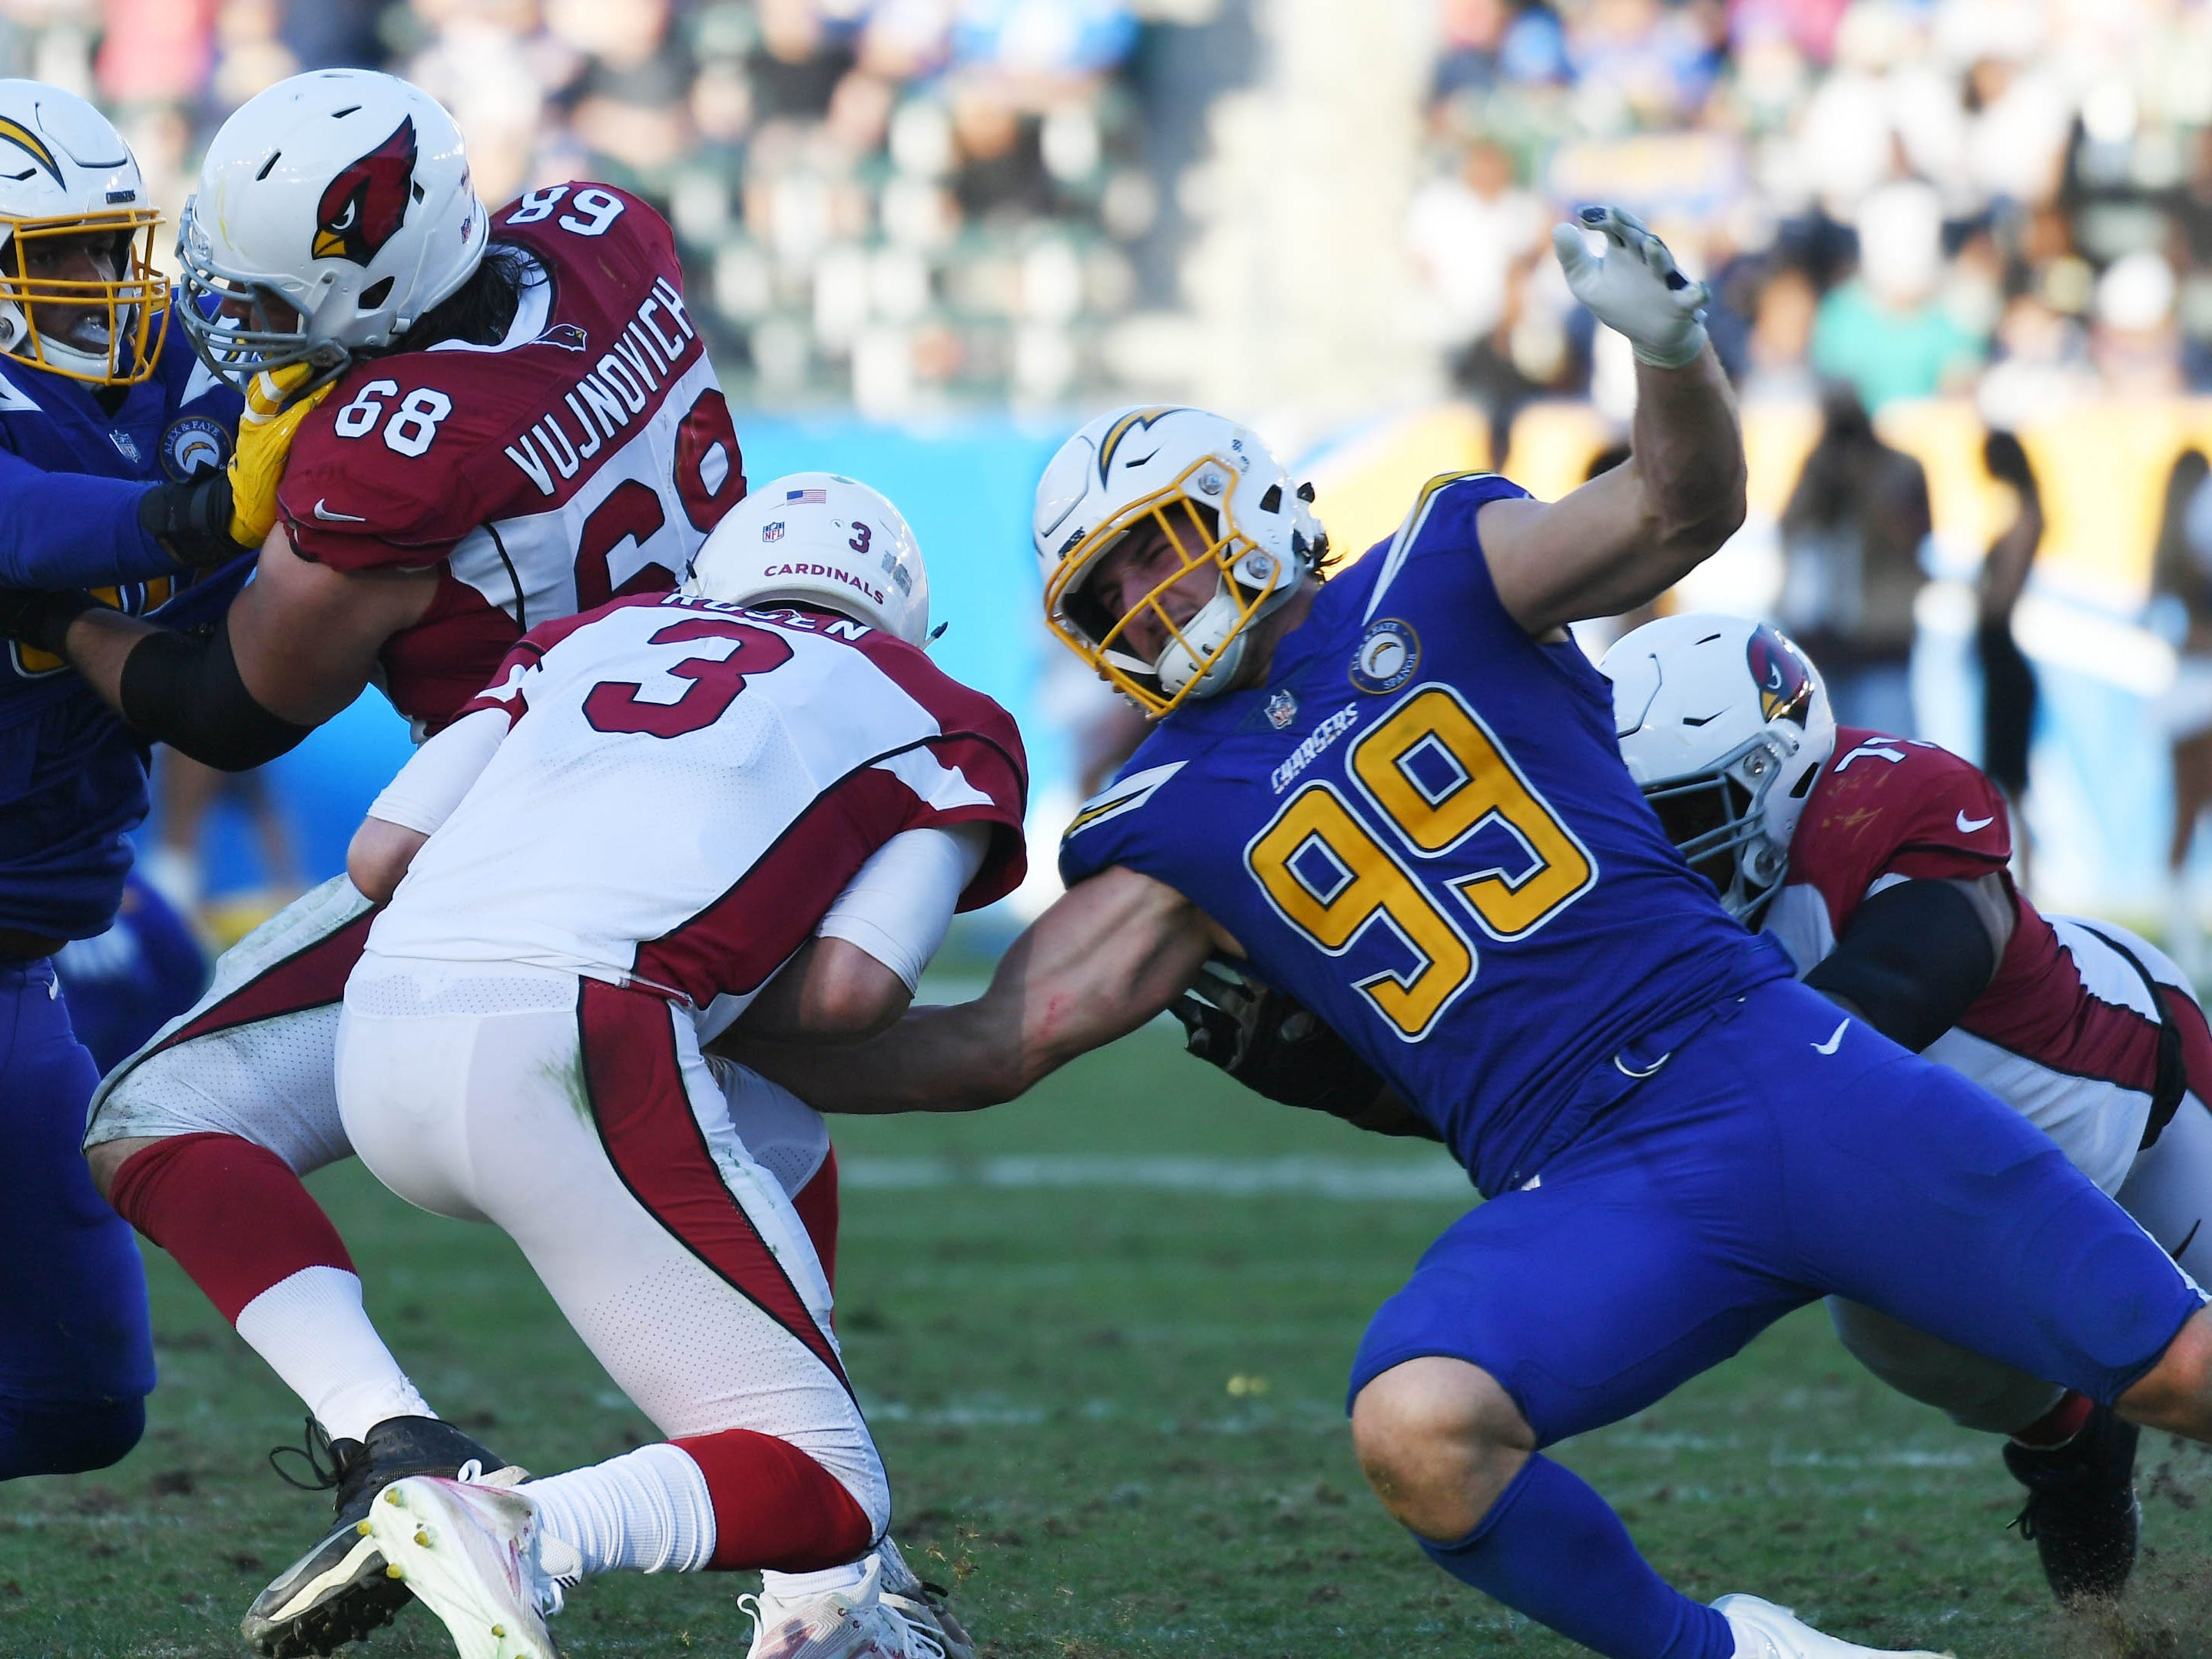 Nov 25, 2018; Carson, CA, USA; Arizona Cardinals quarterback Josh Rosen (3) is sacked by Los Angeles Chargers defensive end Joey Bosa (99) in the second half at the StubHub Center.